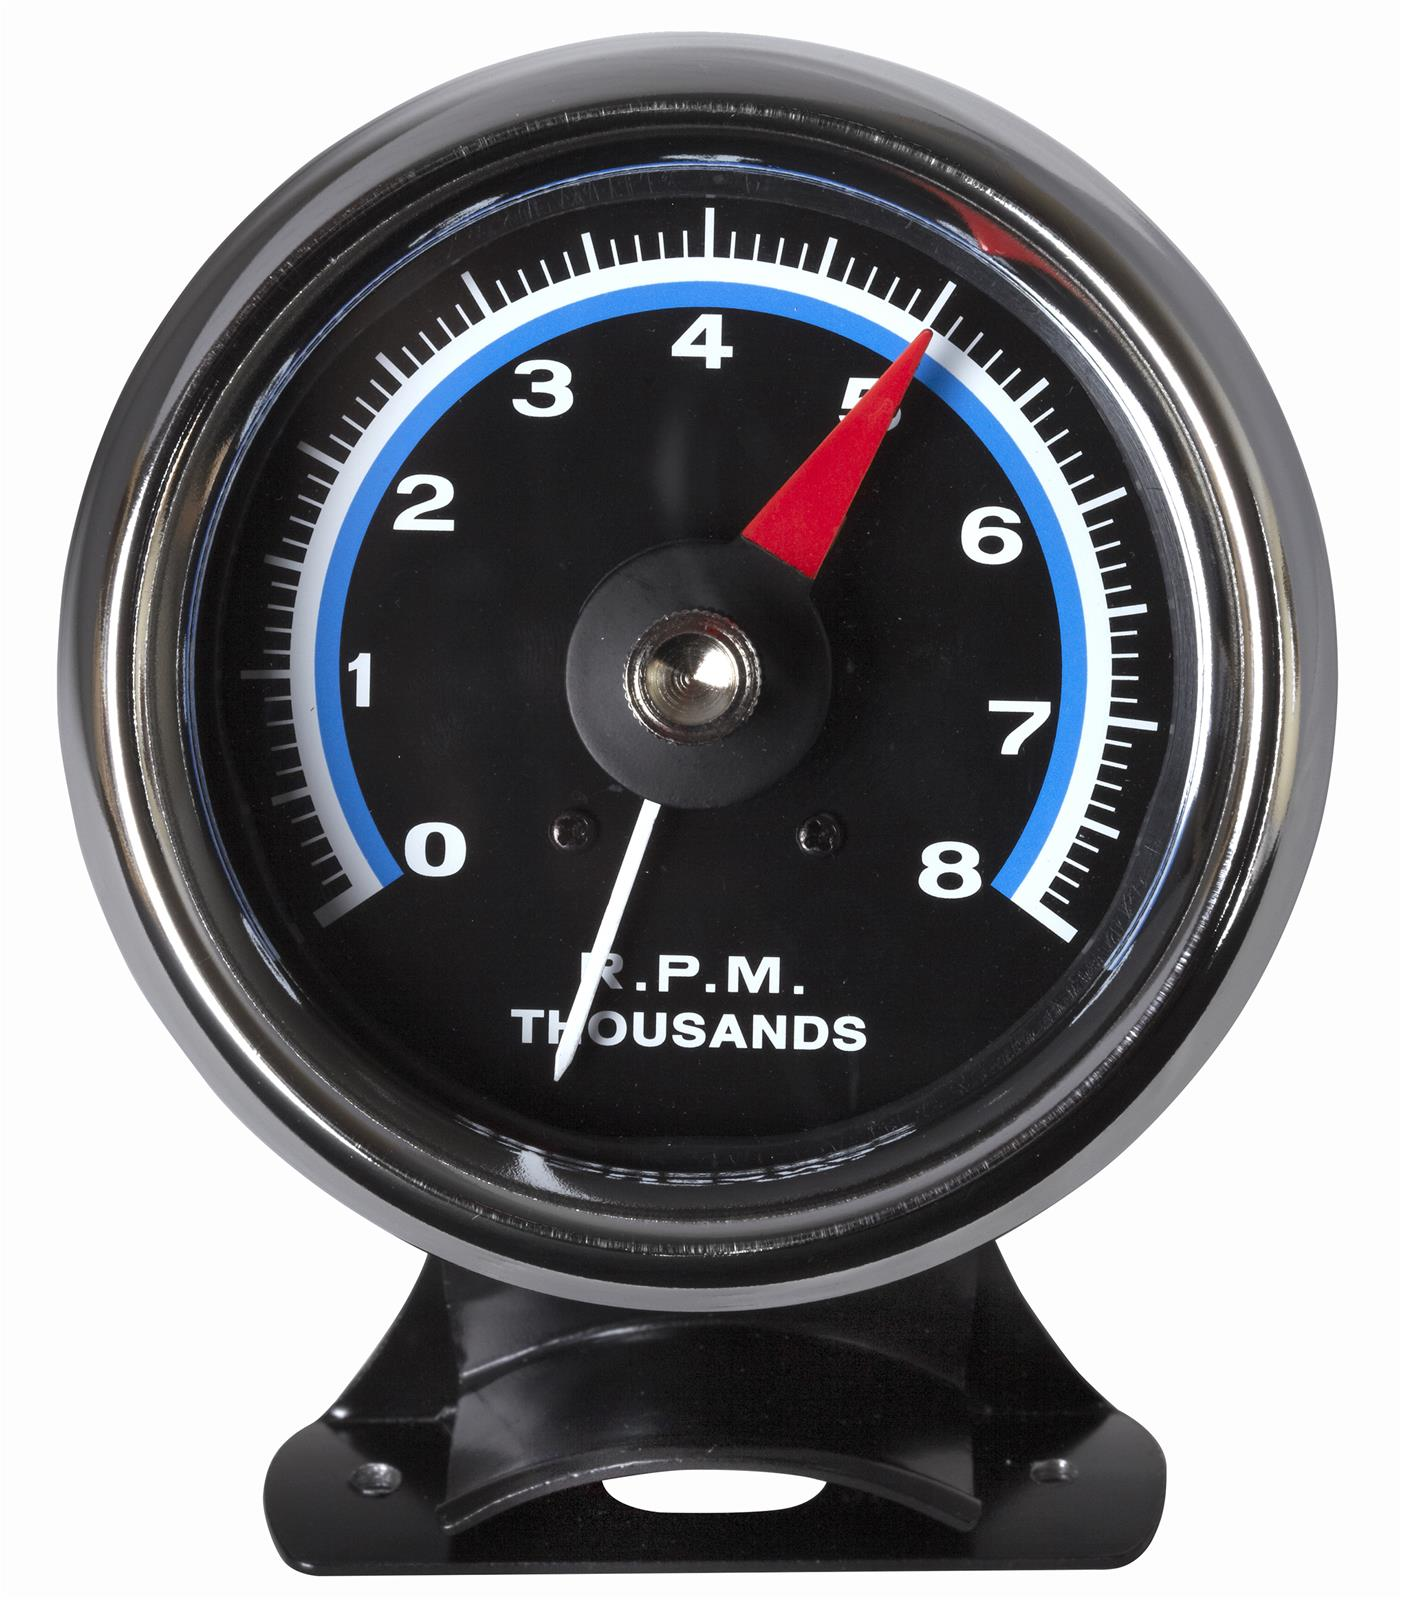 Bosch Retro Line Tachometer Gauges FST8000 - Free Shipping on Orders Over  $49 at Summit Racing